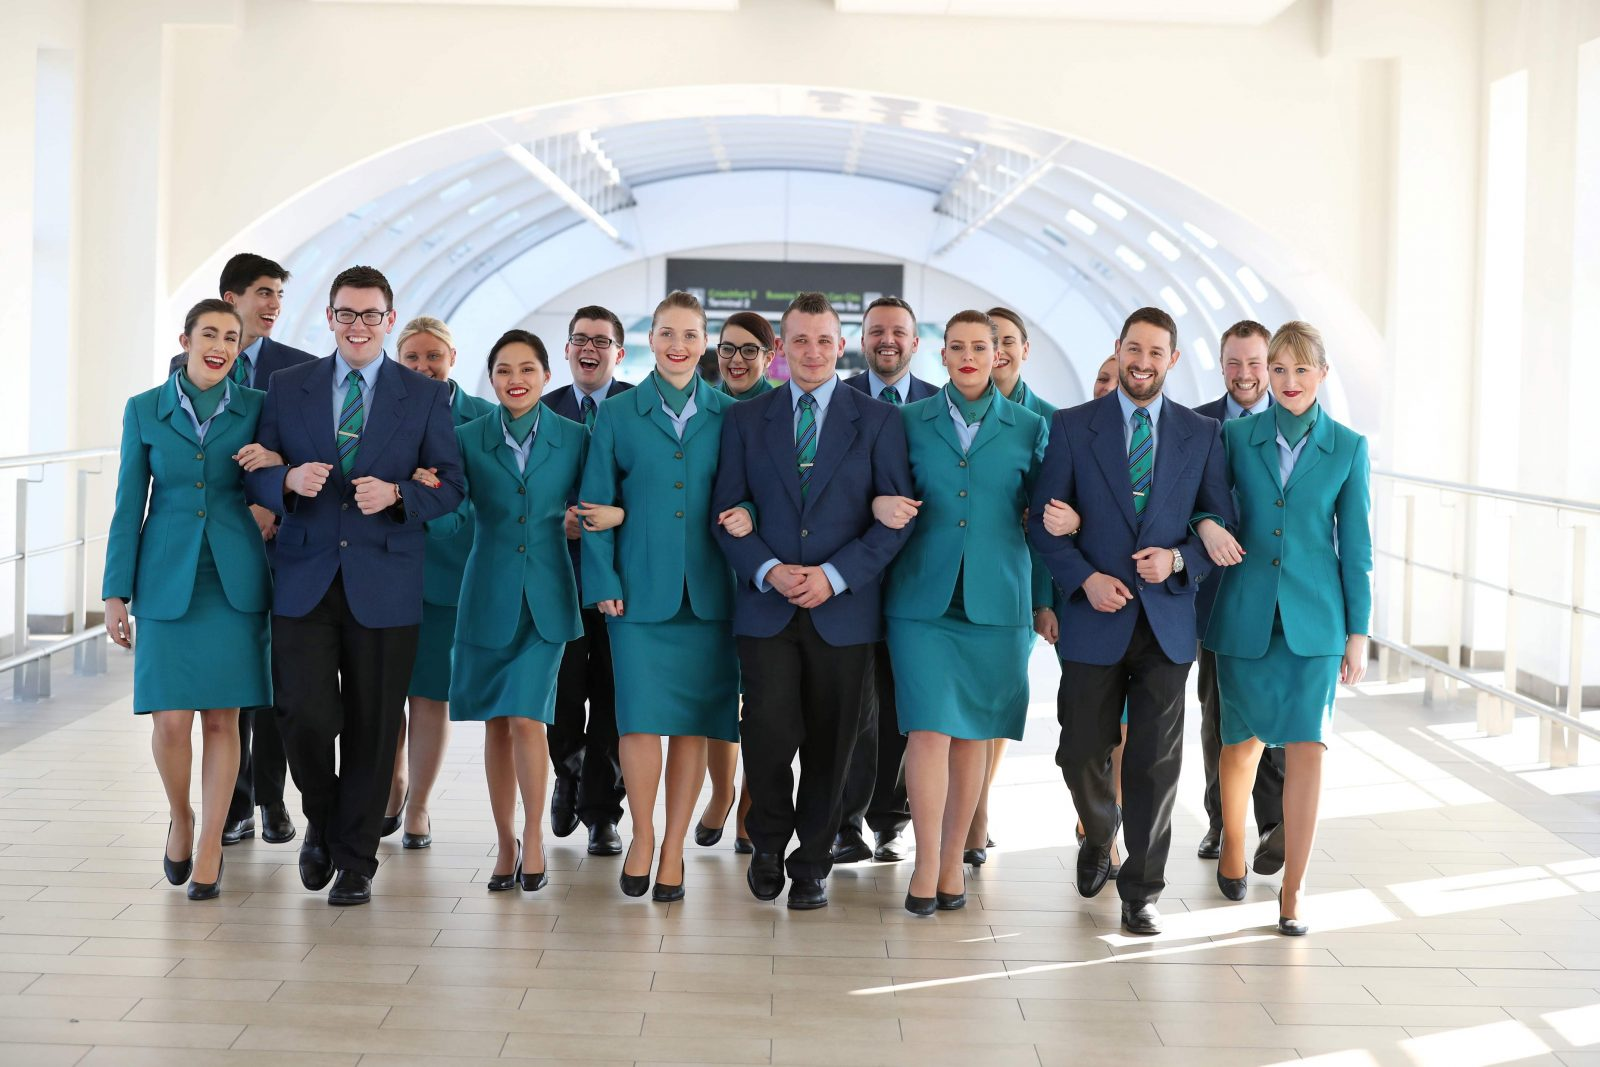 Aer Lingus Launches Big Cabin Crew Recruitment Drive for Dublin and Cork Bases